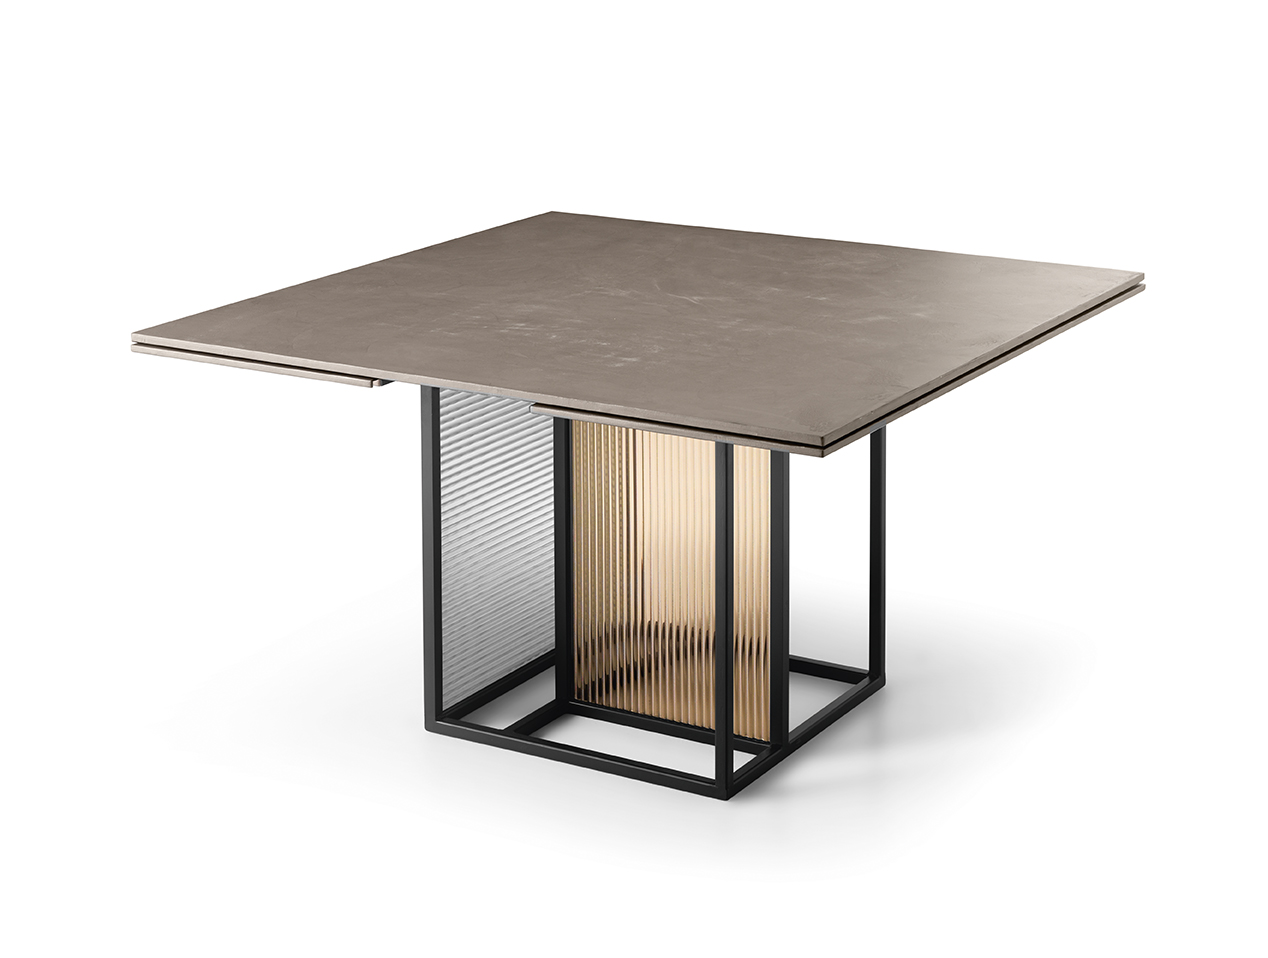 fiam-theo-table-2